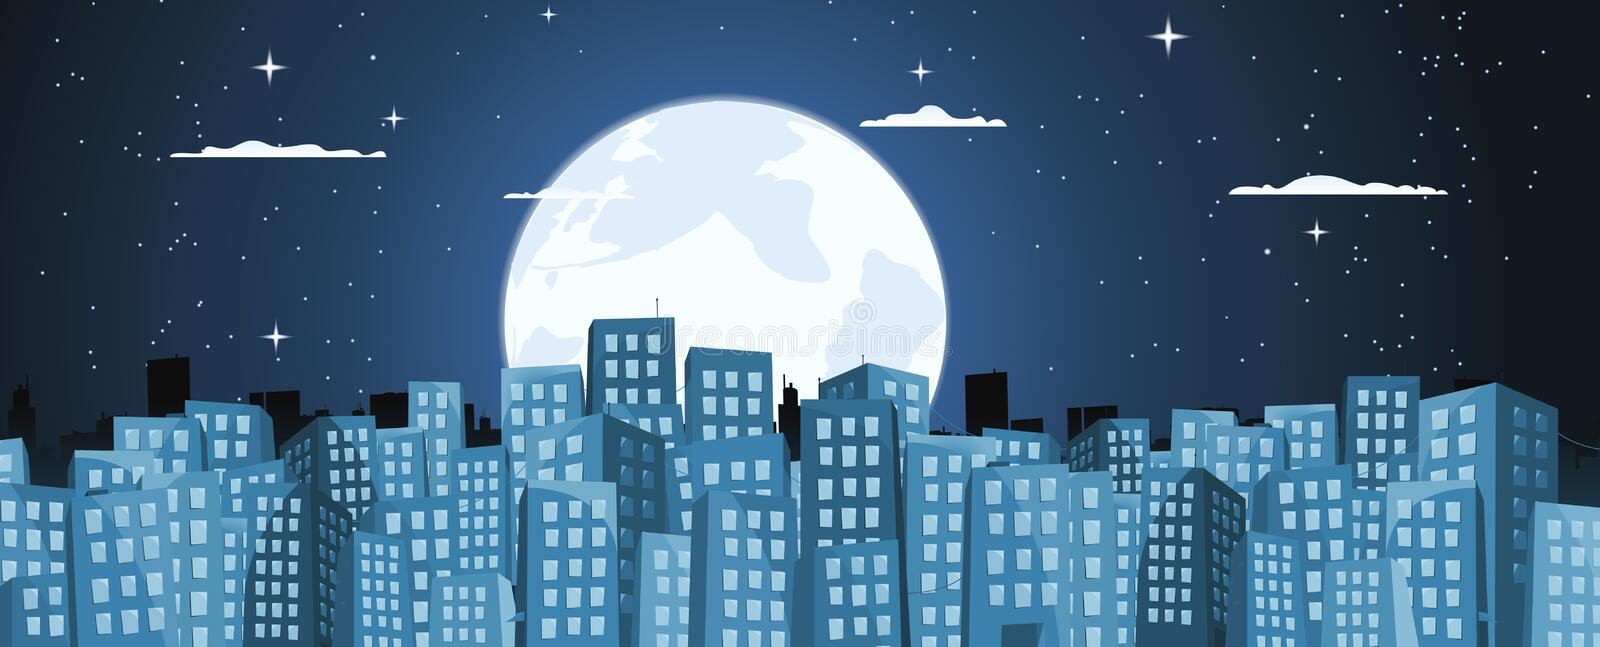 Cartoon Buildings Background In The Moonlight stock illustration